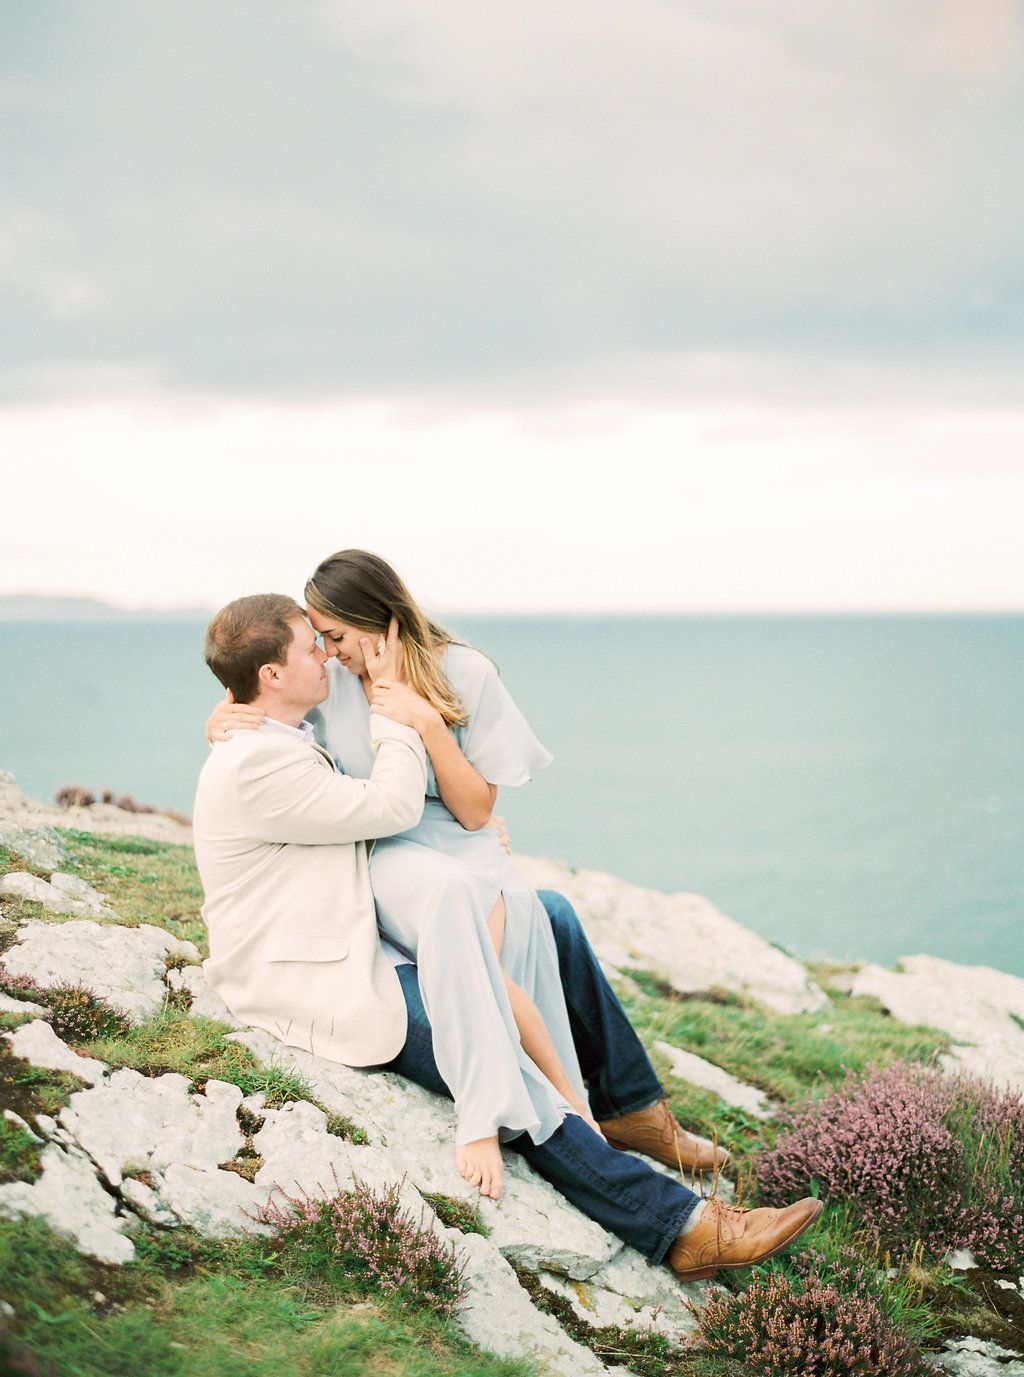 A Beautiful Anniversary Shoot On The Cliffs In Ireland